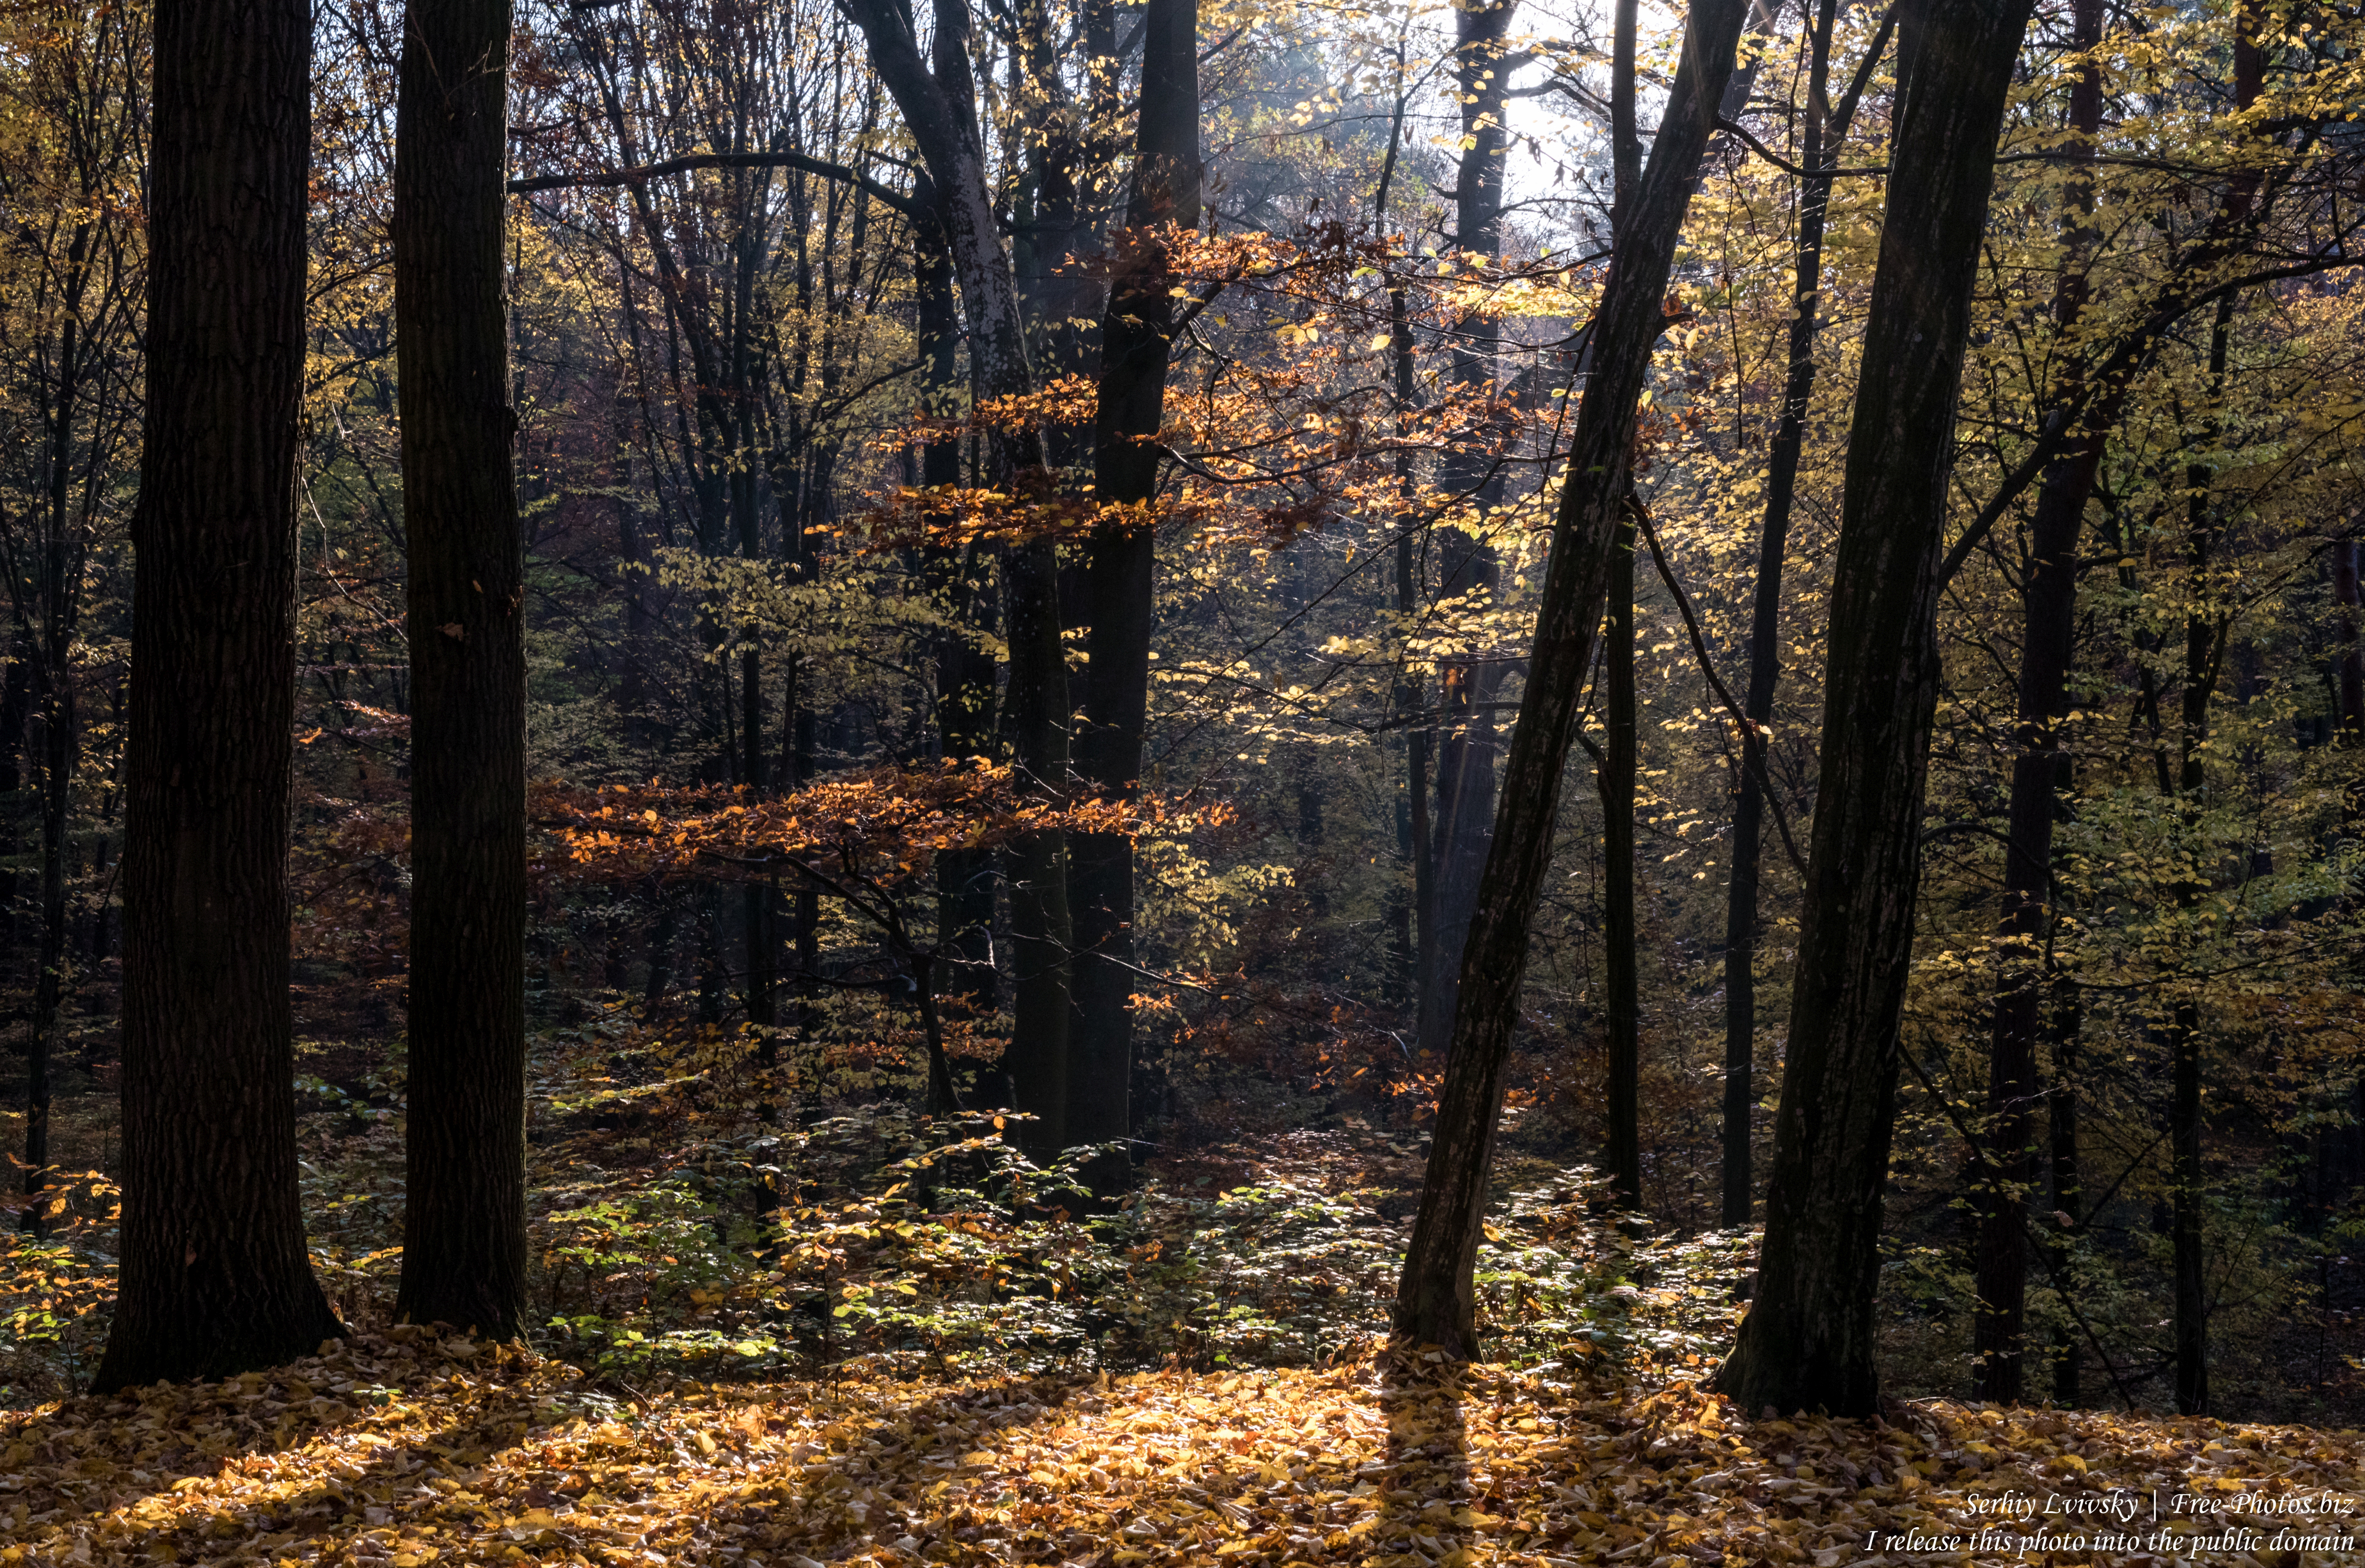 nature_in_lviv_region_of_ukraine_photographed_in_october_2019_by_serhiy_lvivsky_03